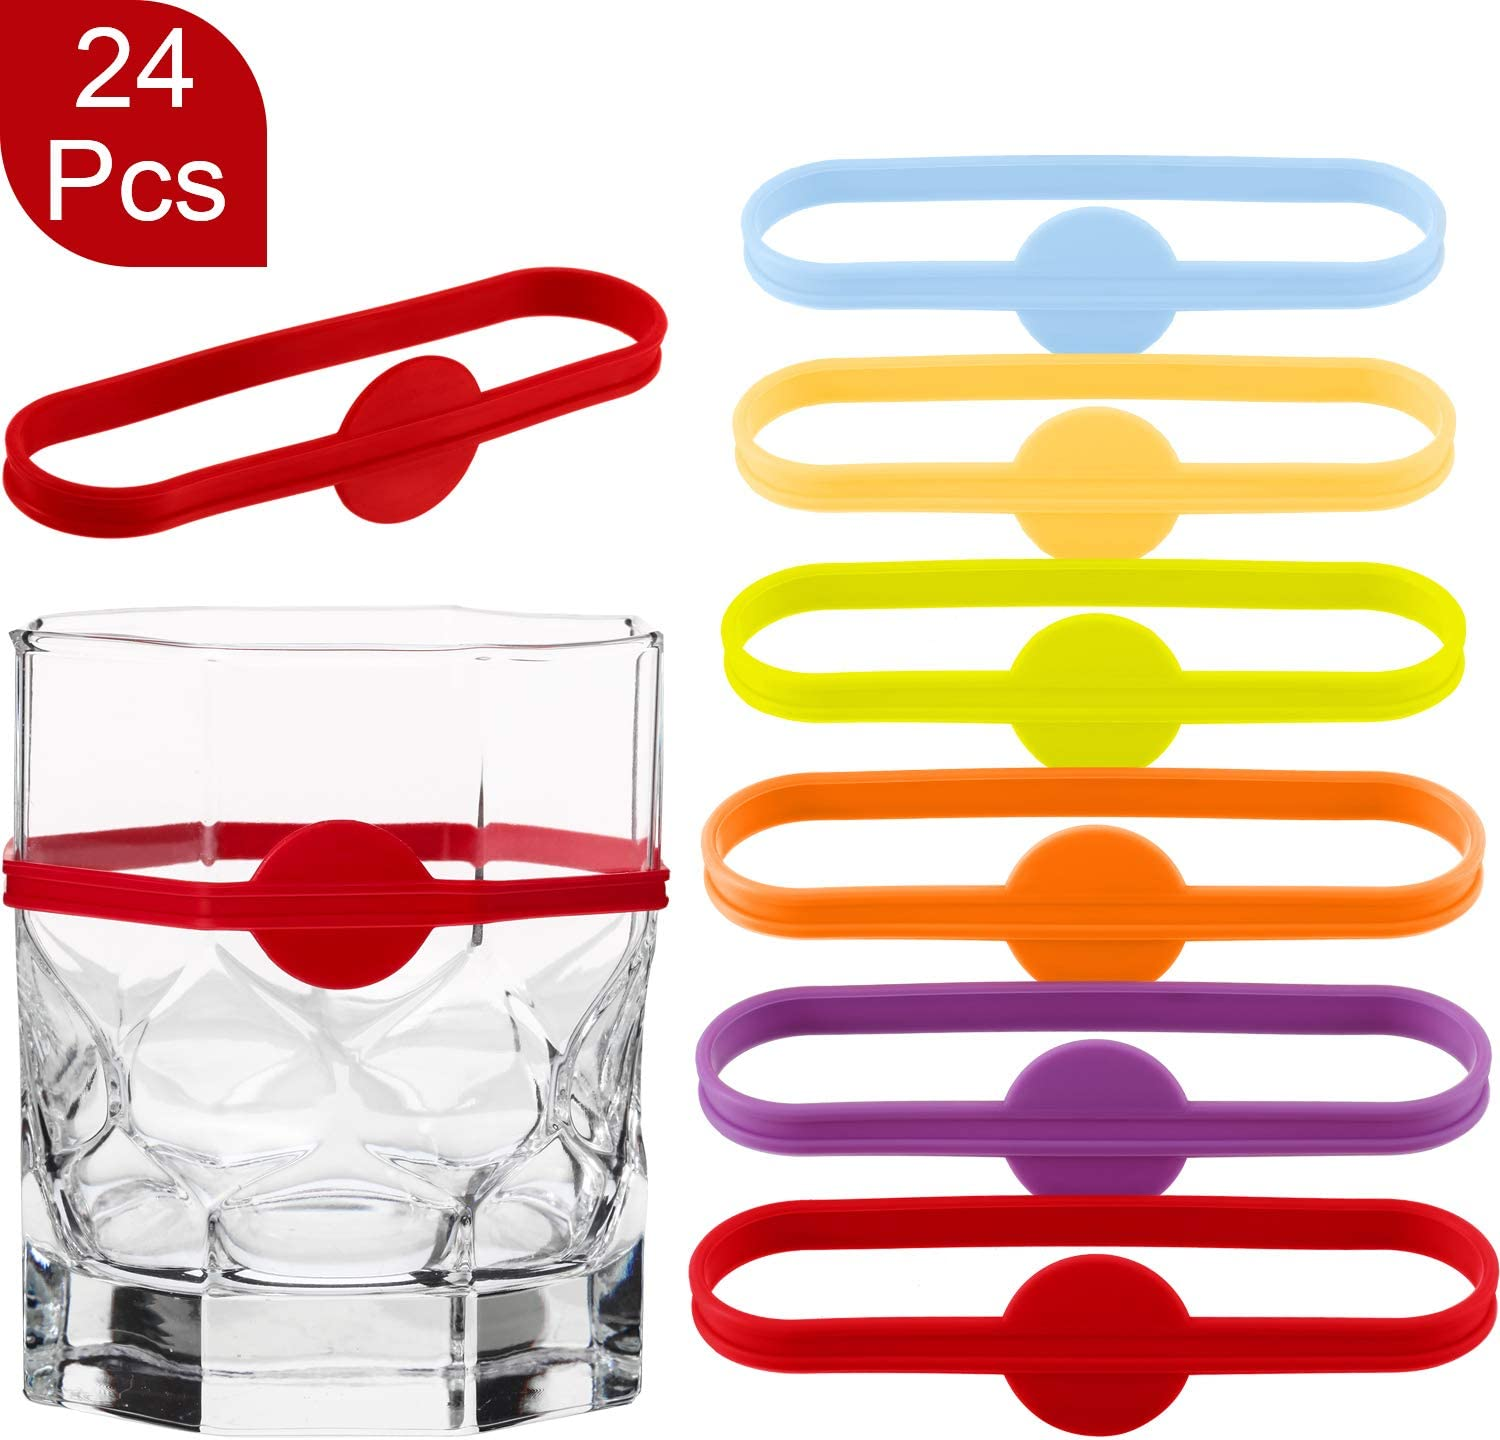 24 Pieces Drink Markers, Glass Cup Wine Glass Bottle Strip Tag Marker, Cocktail Glass Party Solution for Guests